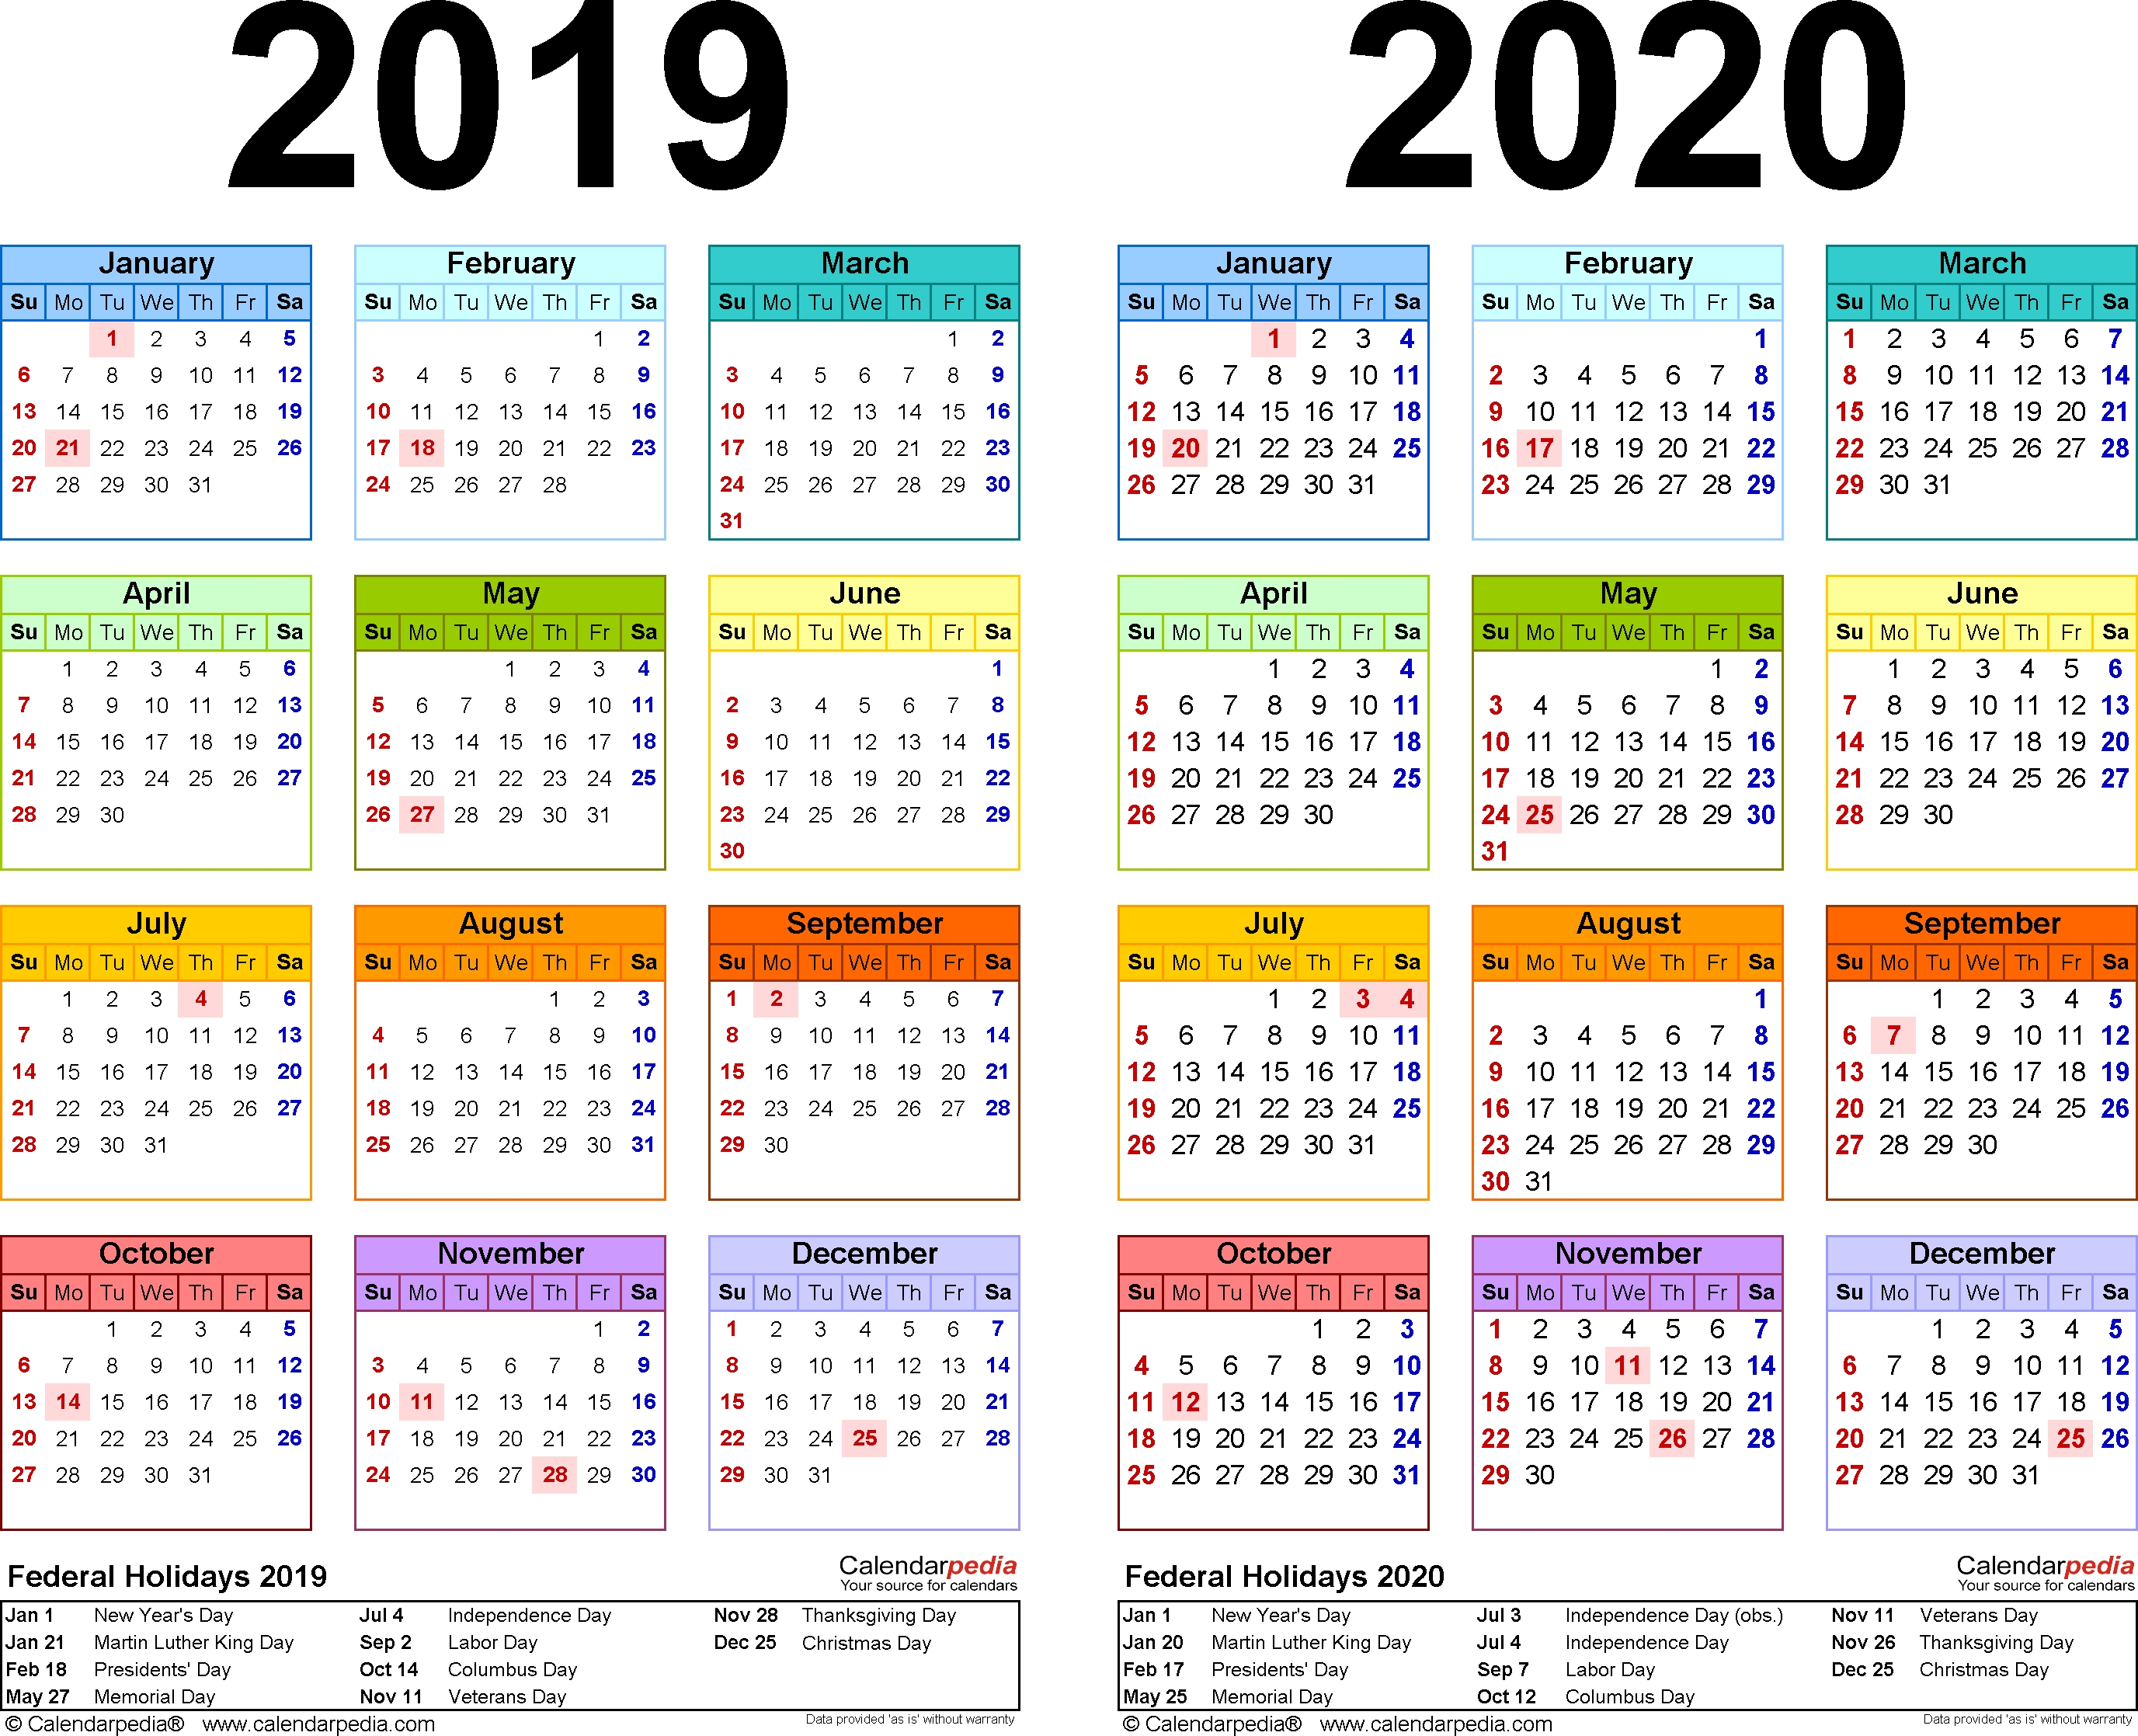 2019-2020 Calendar - Free Printable Two-Year Excel Calendars pertaining to Calendar For 2019 And 2020 To Edit